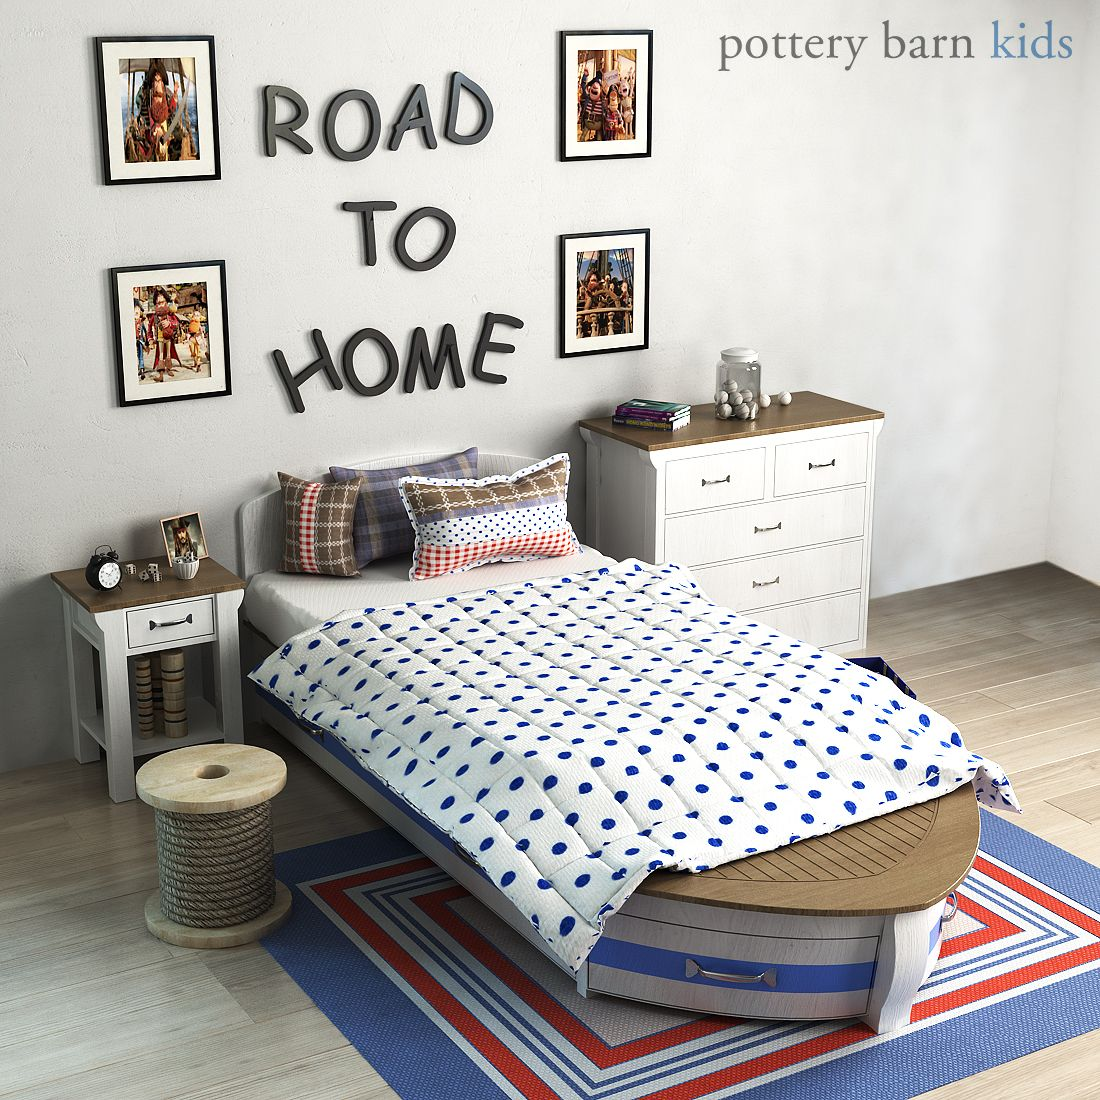 Pottery Barn Speedboat Bed Trundle Barn Pottery Speedboat Trundle Speedboat Bed Pottery Barn Bed